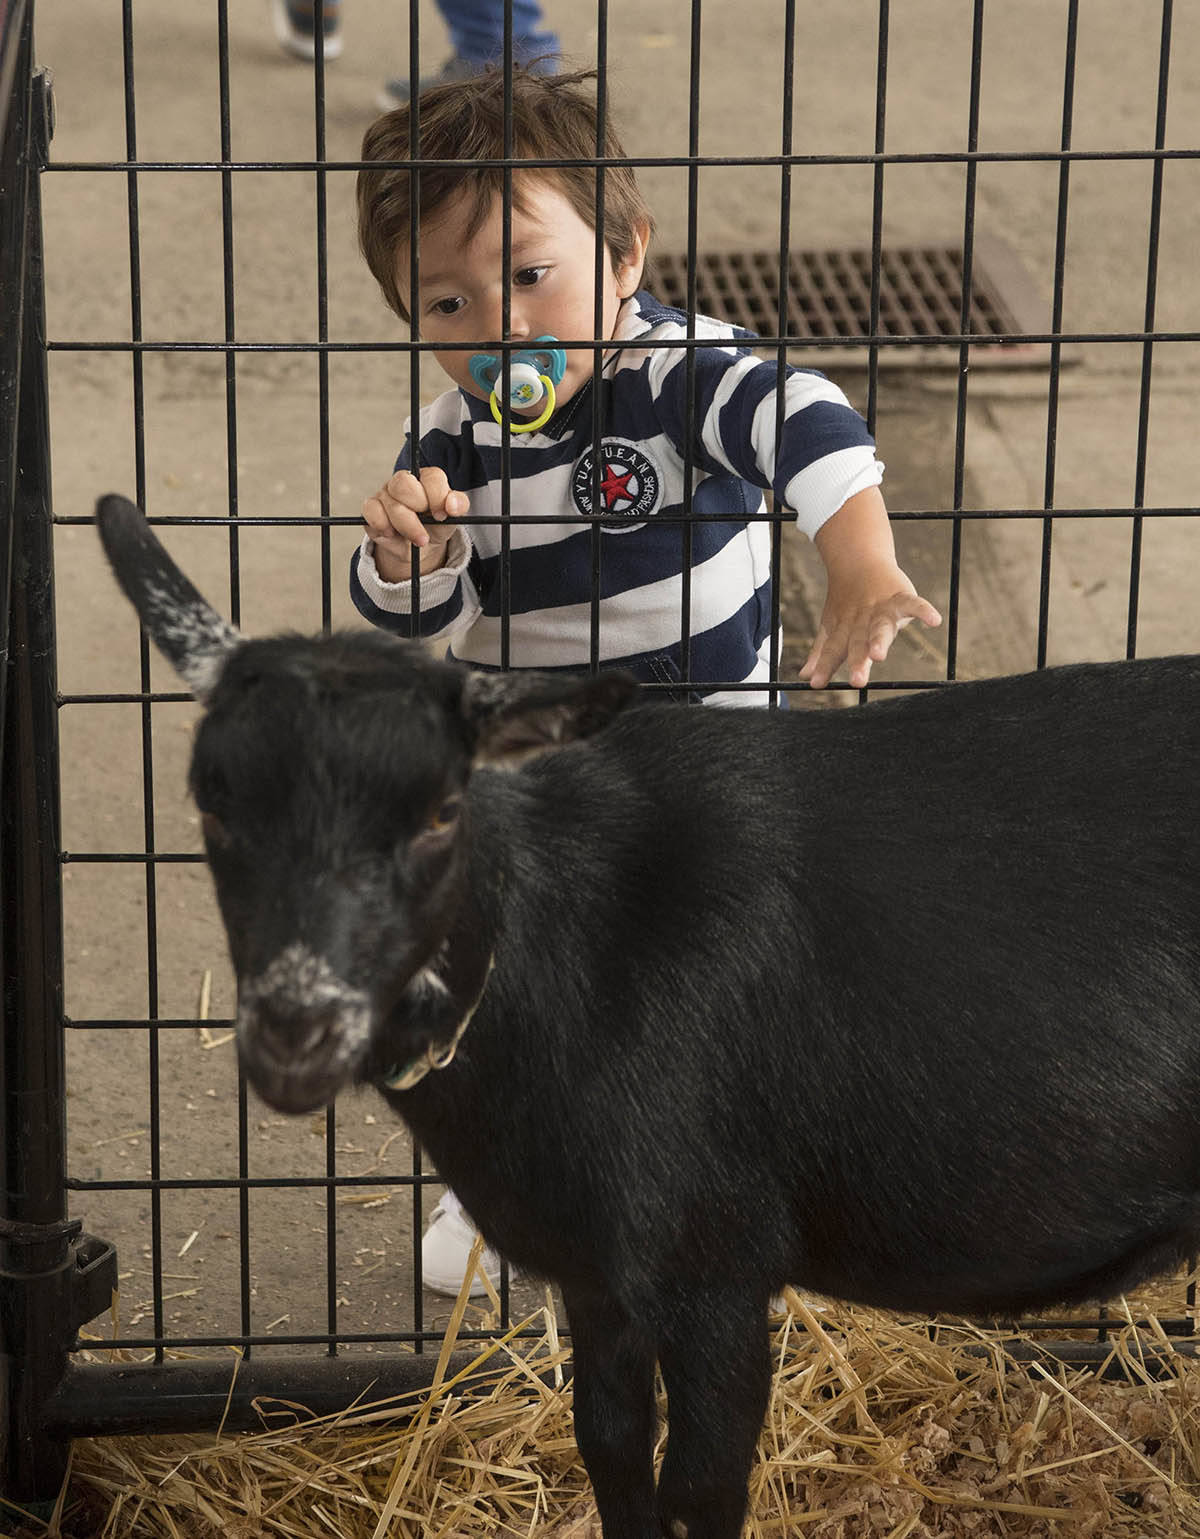 At the livestock barns, Surrey's Santiago Melgar, 1, wasn't the only kid in attendance during the opening day of the 2021 PNE Fair FUNdamentals, on Saturday, Aug. 21. The fair runs until Sept. 6 (closed Aug. 23 and 30) at a reduced capacity, and admission tickets must be purchased online in advance. (Photo courtesy PNE/Craig Hodge)